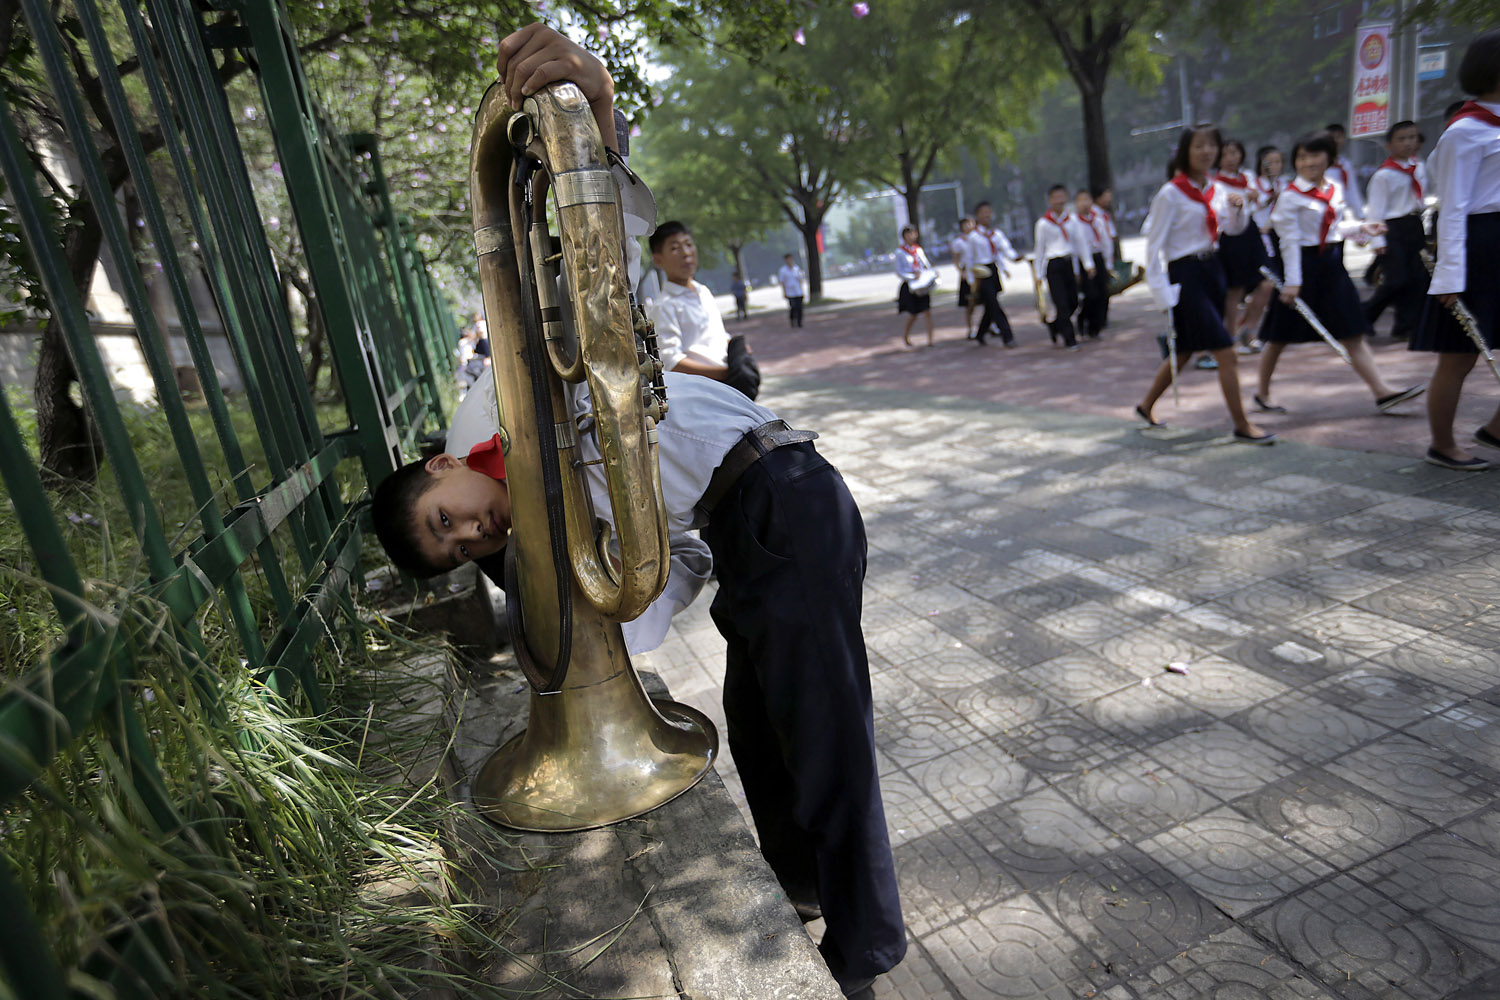 Jul. 27, 2014. A North Korean student cleans his tuba ahead of a parade to celebrate the anniversary of the Korean war armistice agreement  in Pyongyang, North Korea.